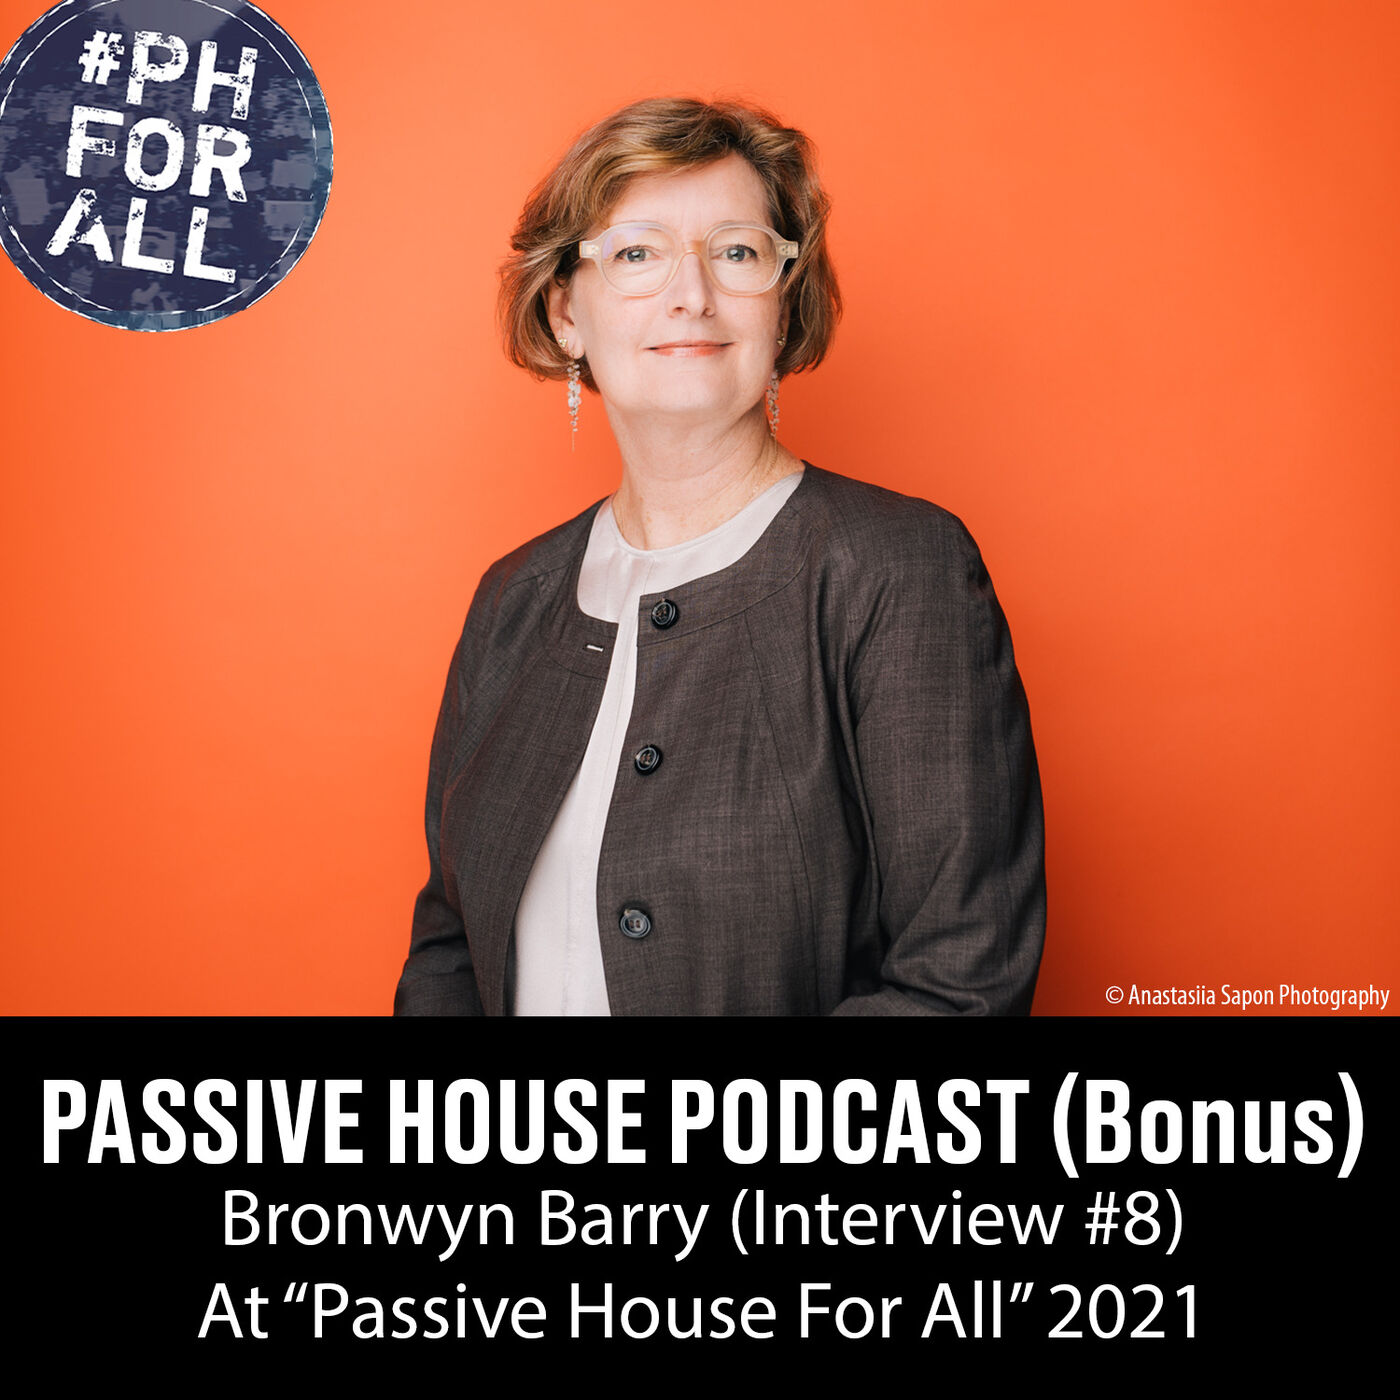 Bonus: Bronwyn Barry at Passive House For All Conference (Interview #8)